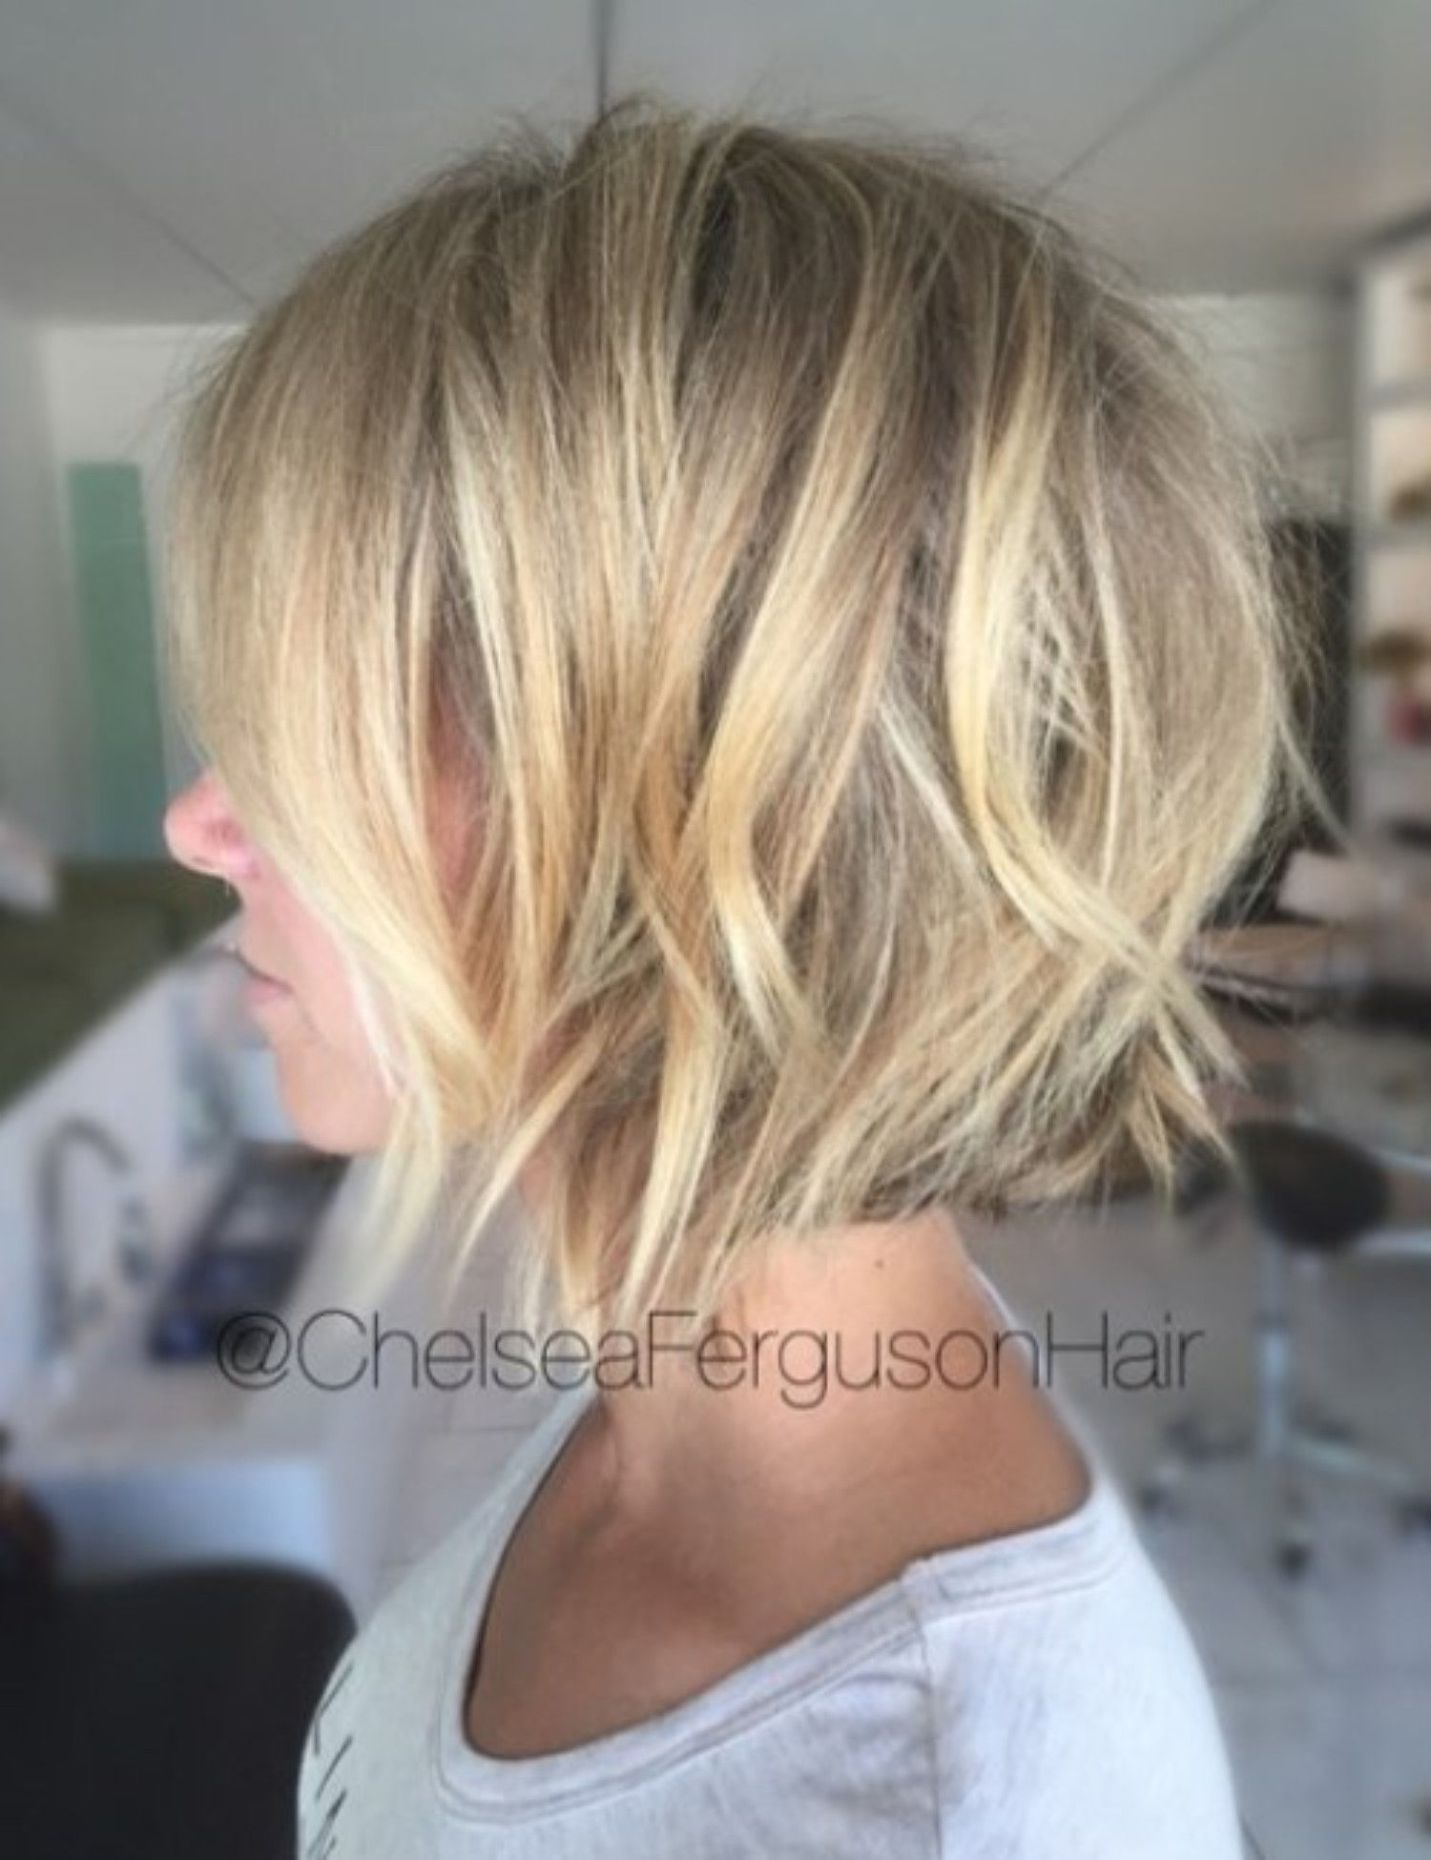 100 Mind Blowing Short Hairstyles For Fine Hair Coupe De Cheveux Coiffure Mi Courte Cheveux Courts